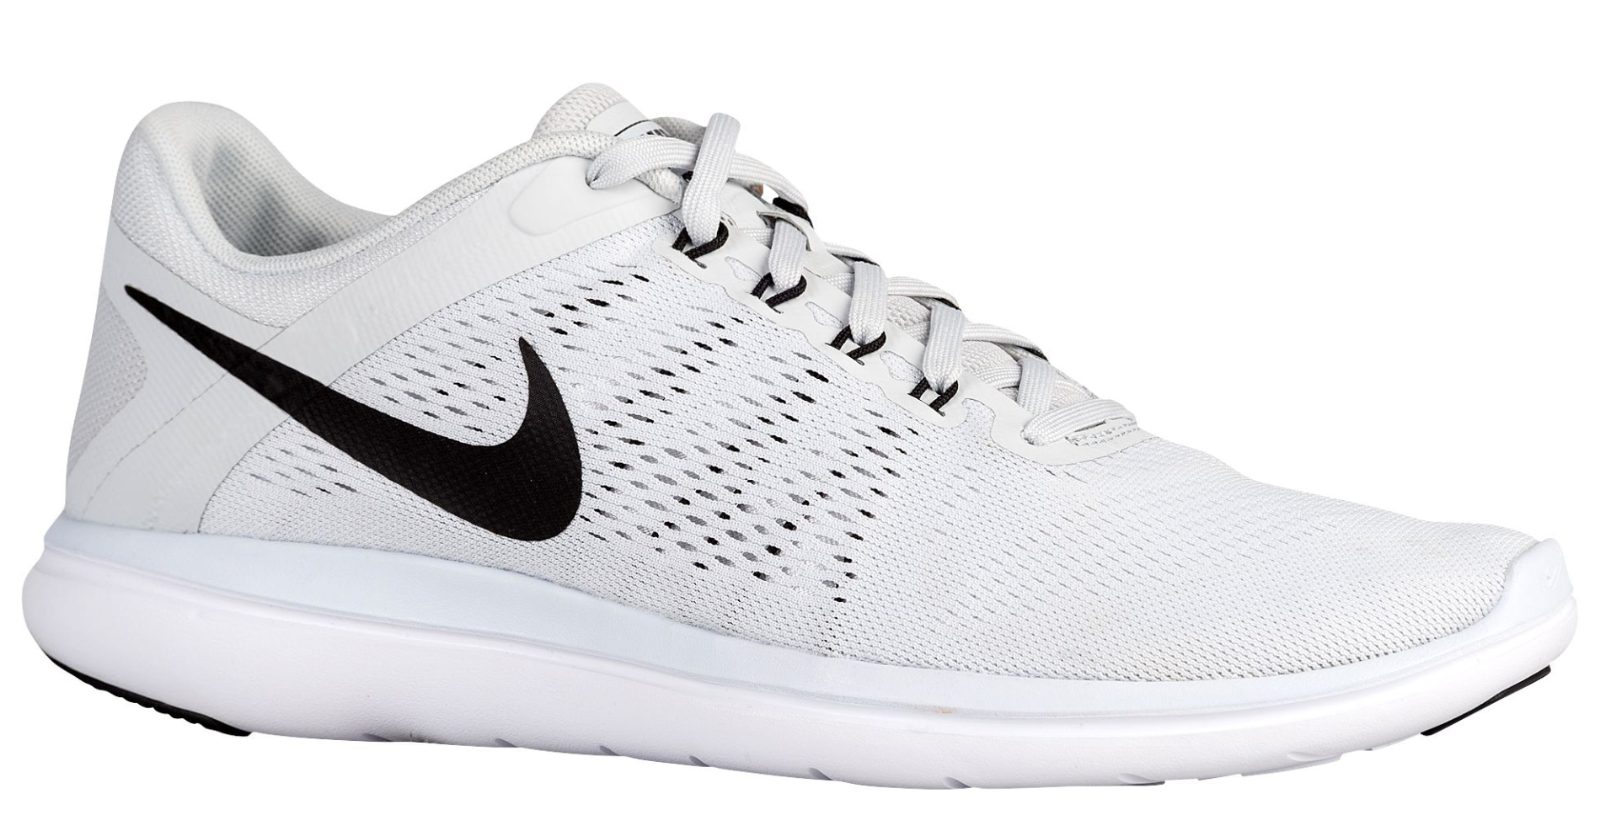 NEW Hommes NIKE Flex RN 2018 Running Trainers Chaussures Size: 6 Color: Platinum